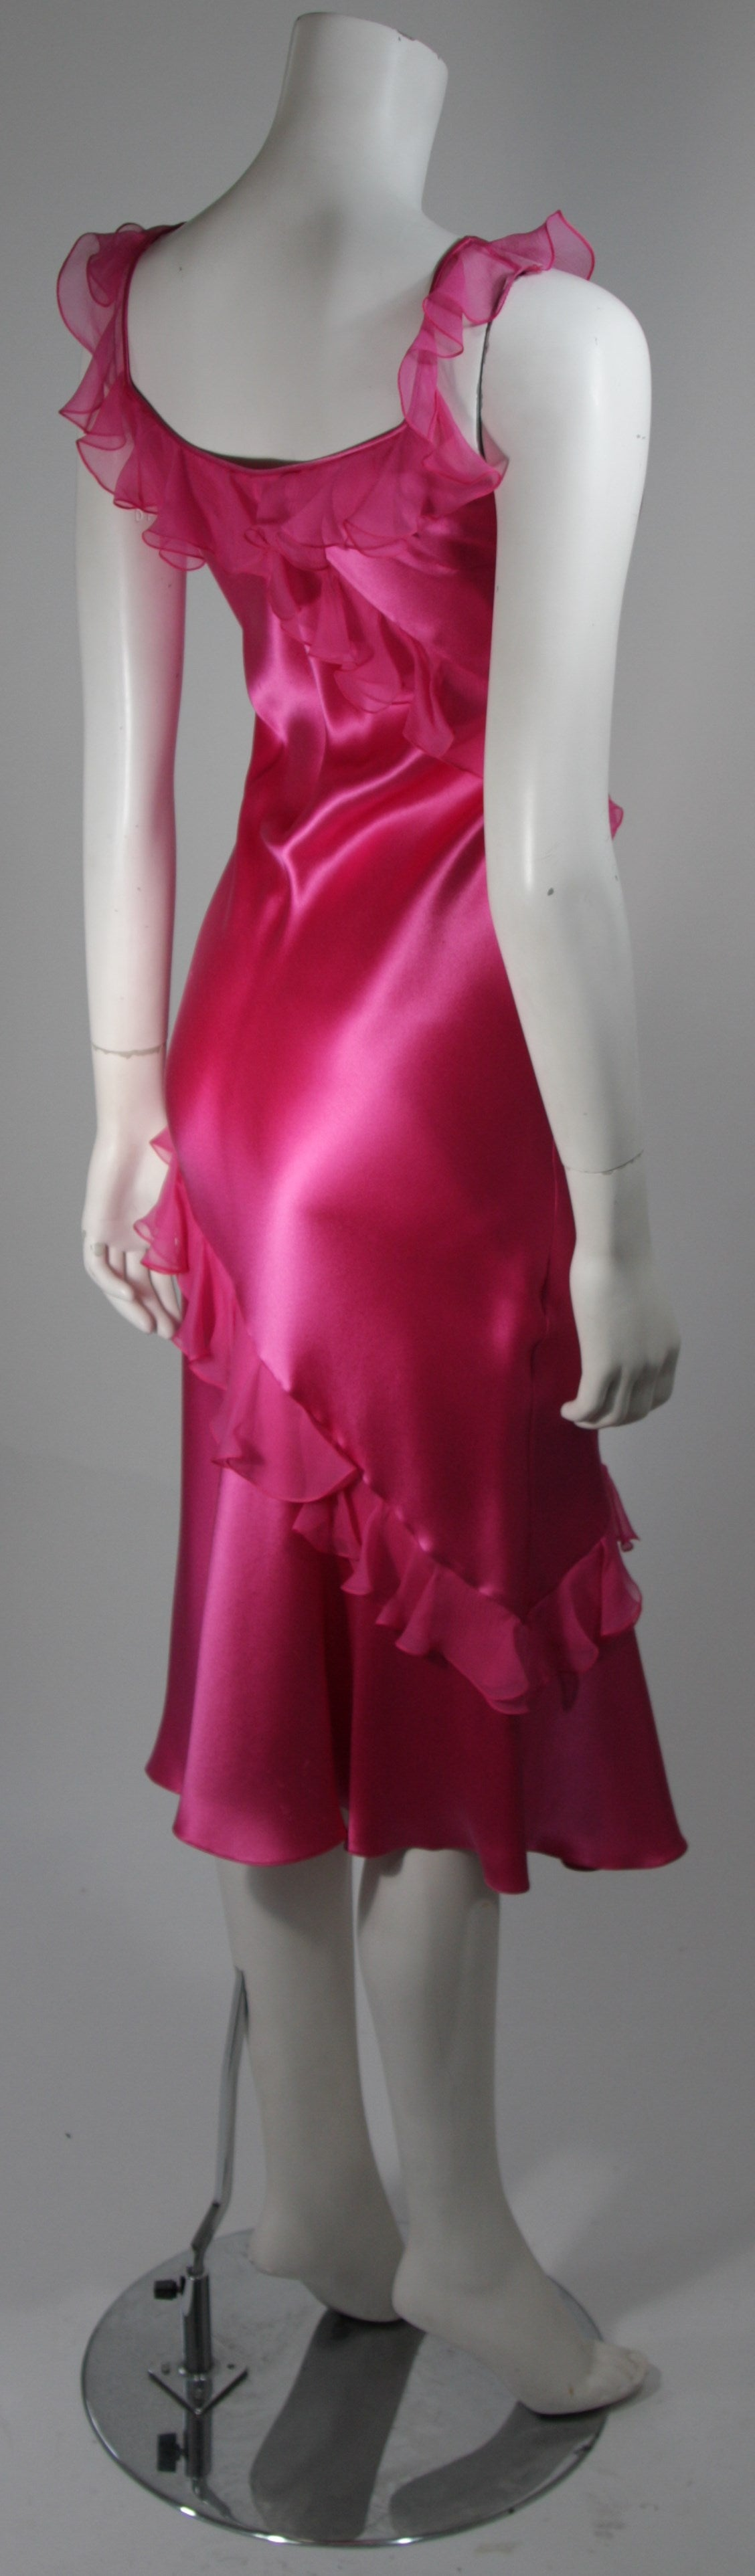 Christian Dior Ruffled Pink Silk Chiffon Dress Size XS In Excellent Condition For Sale In Los Angeles, CA